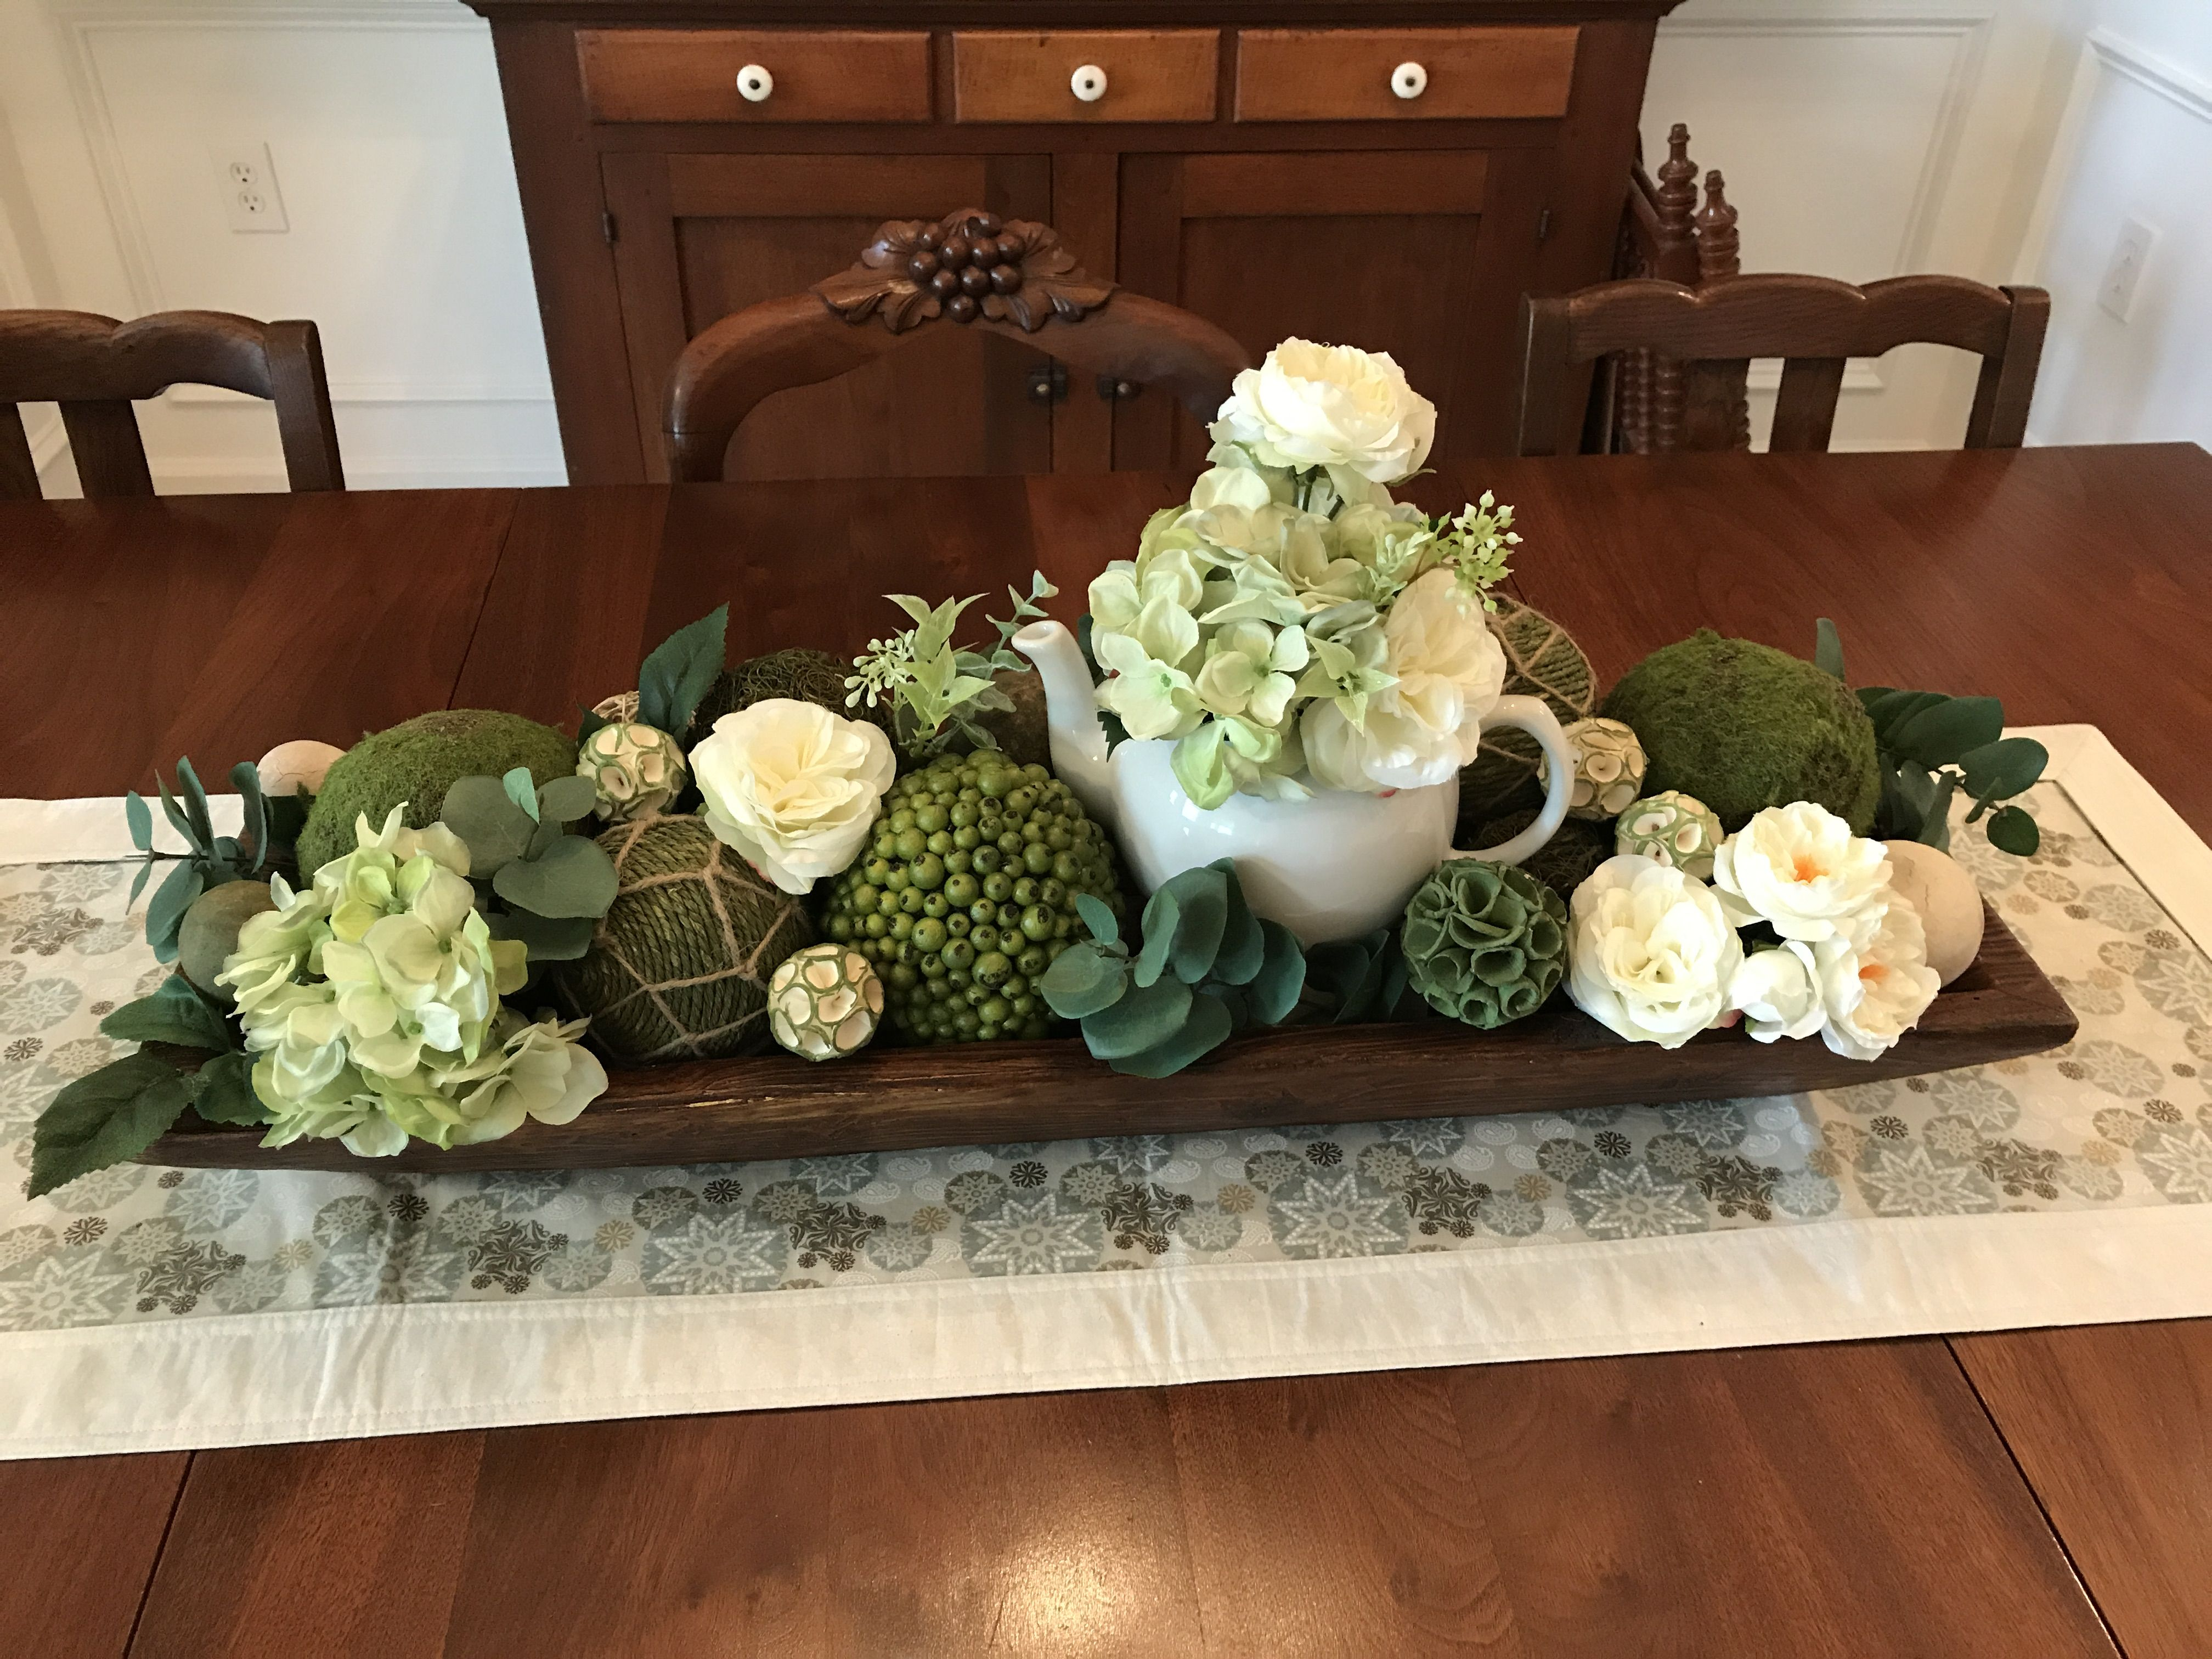 Dough Bowl Summer Decoration For Dining Room Table Used